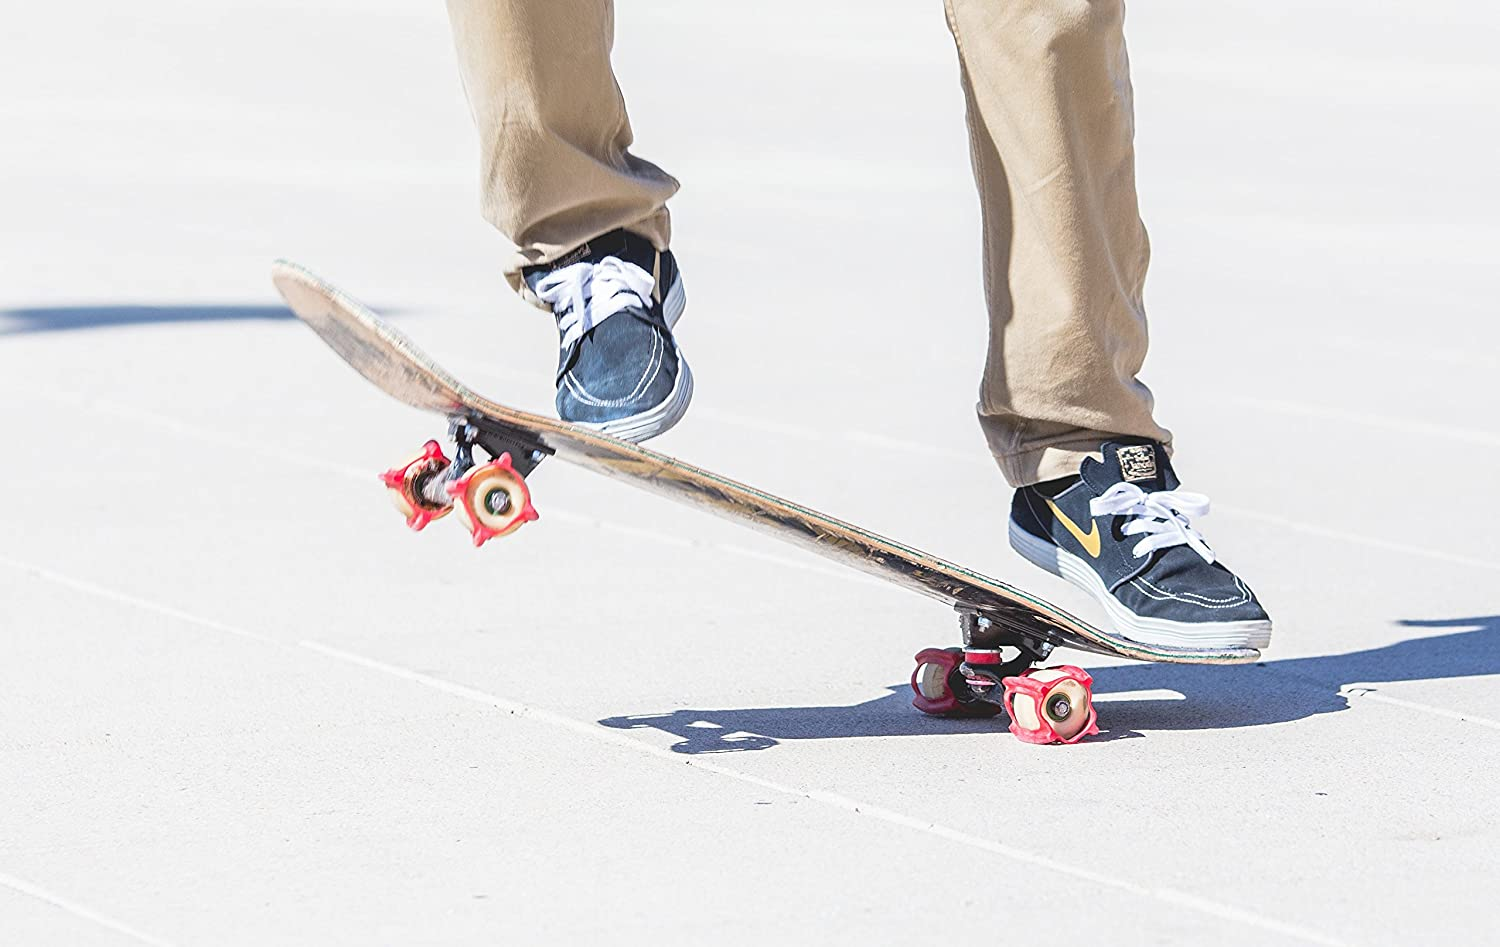 Learn The Rubber Skateboarding Accessory For Perfecting Your Ollie And Kickflip Practice And Land Tricks In No Time Skatertrainer 2 0 Wheels